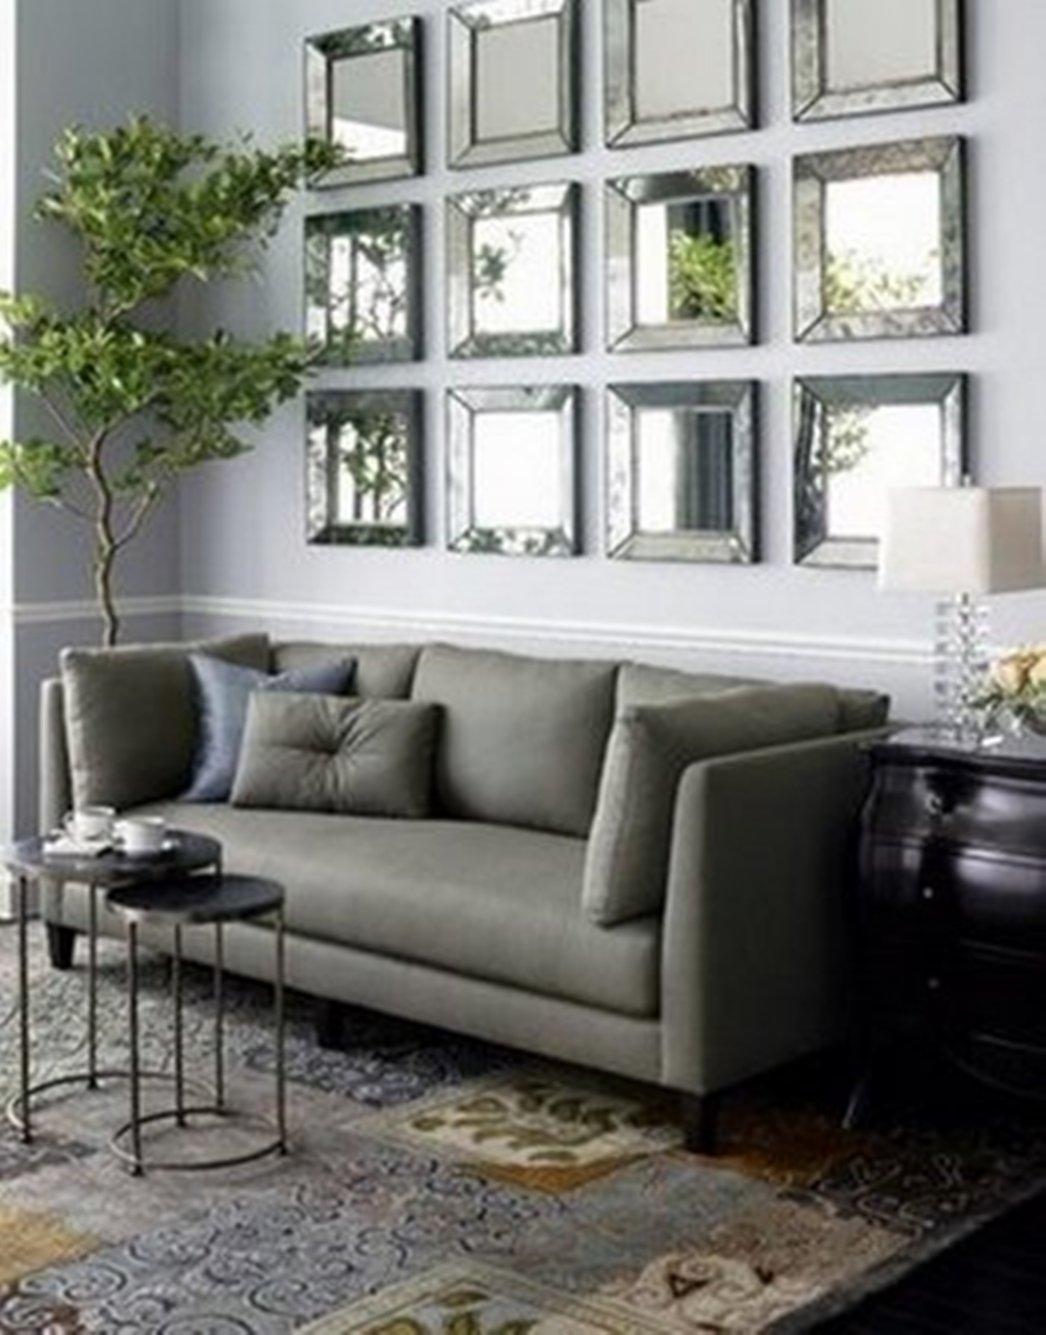 Large Wall Mirrors For Living Room – Living Room Within Framed Mirrors For Living Room (Image 15 of 20)